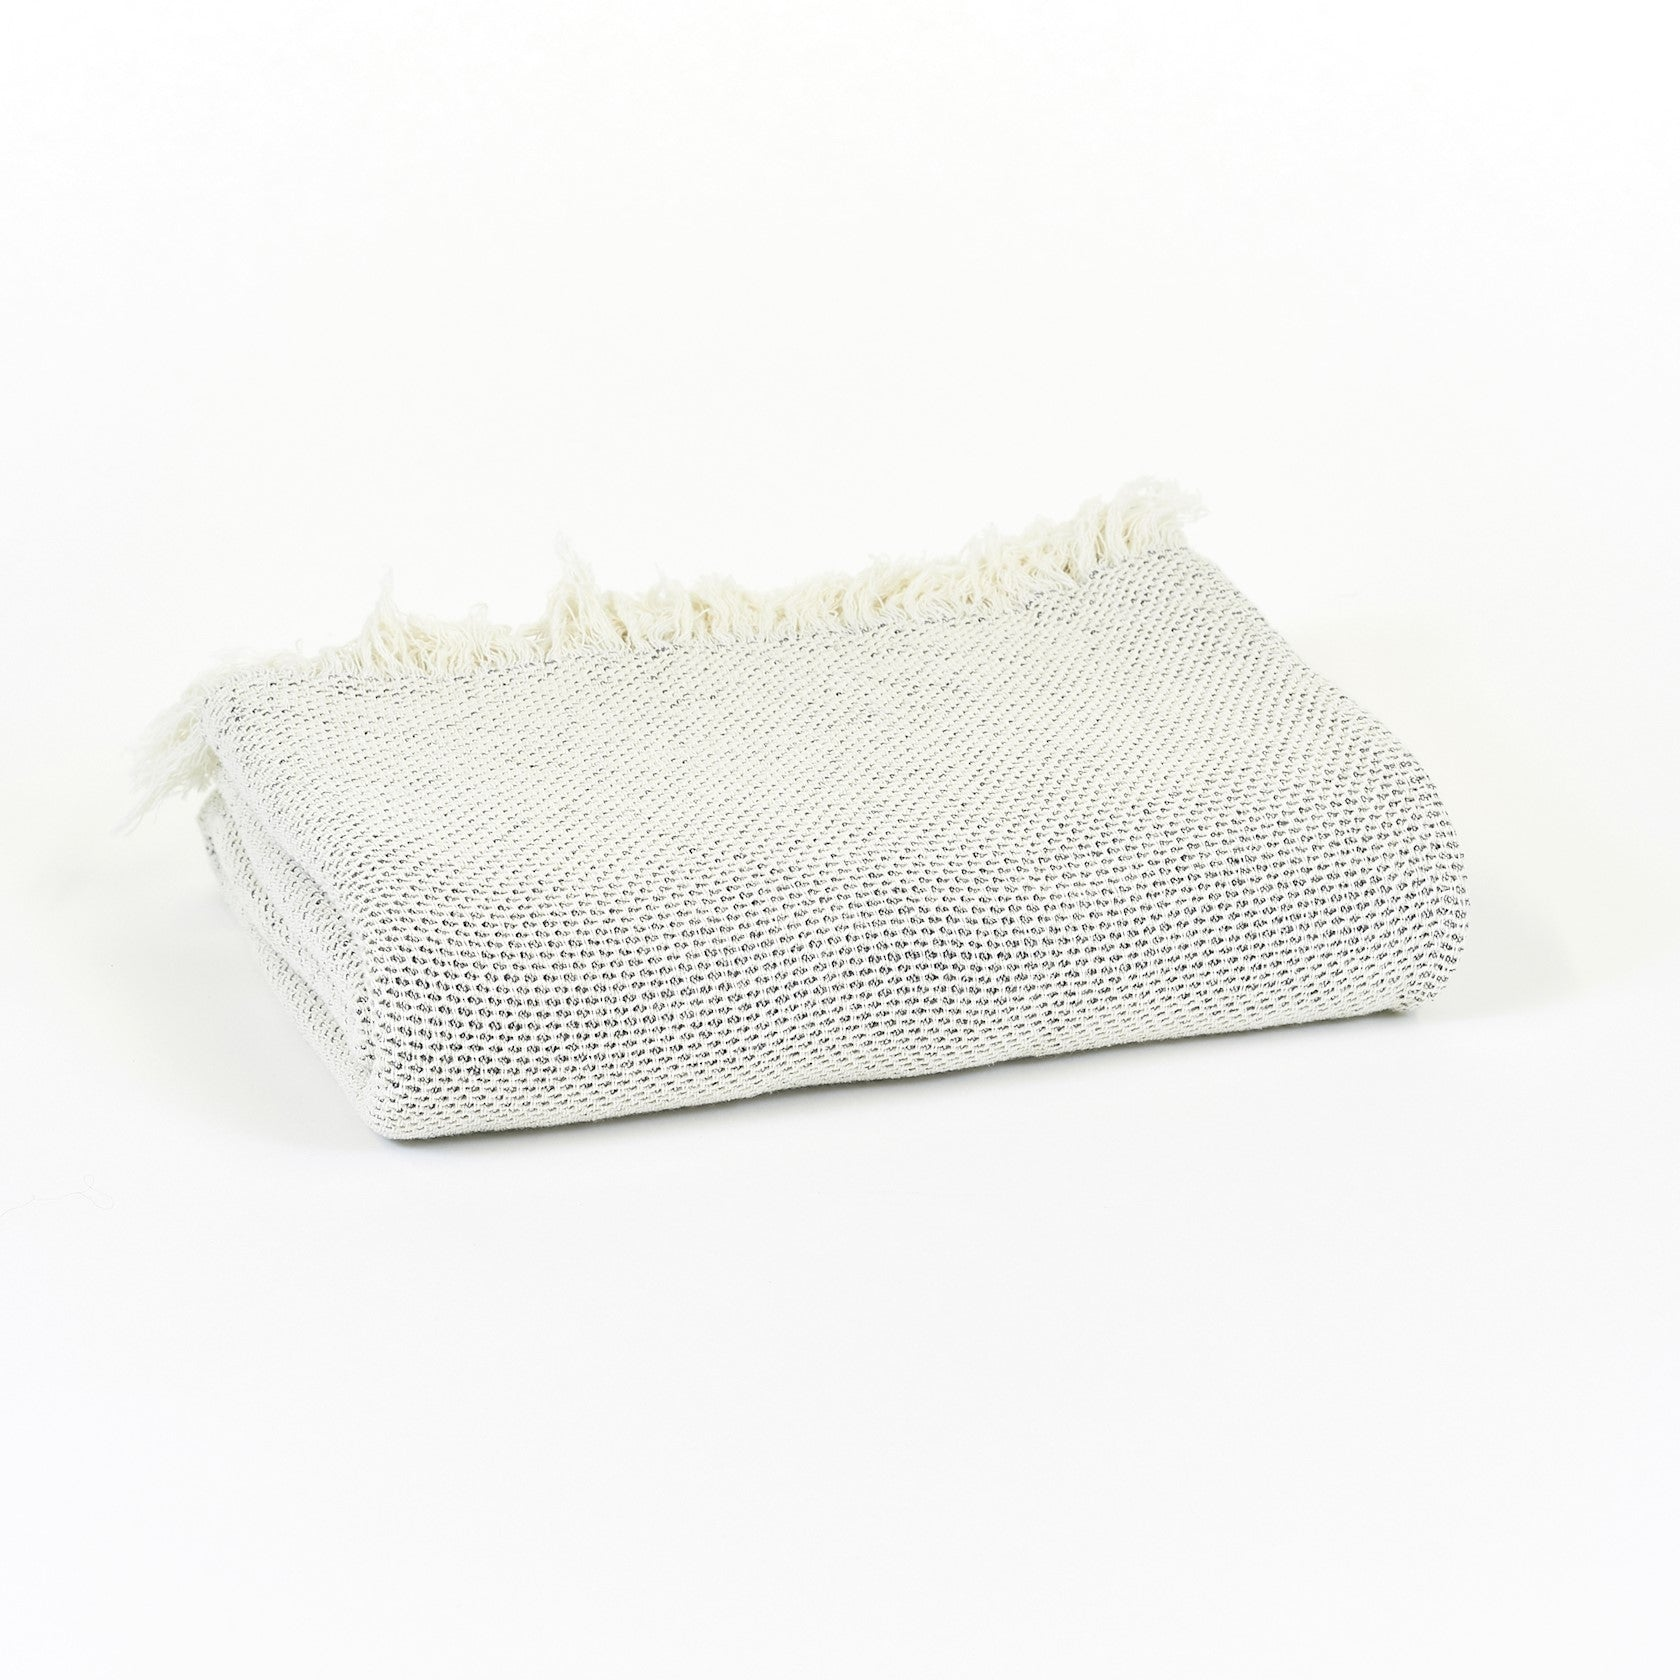 BEACH TOWEL 'HONEYCOMB' - Bath Linen - SCAPA HOME - SCAPA HOME OFFICIAL